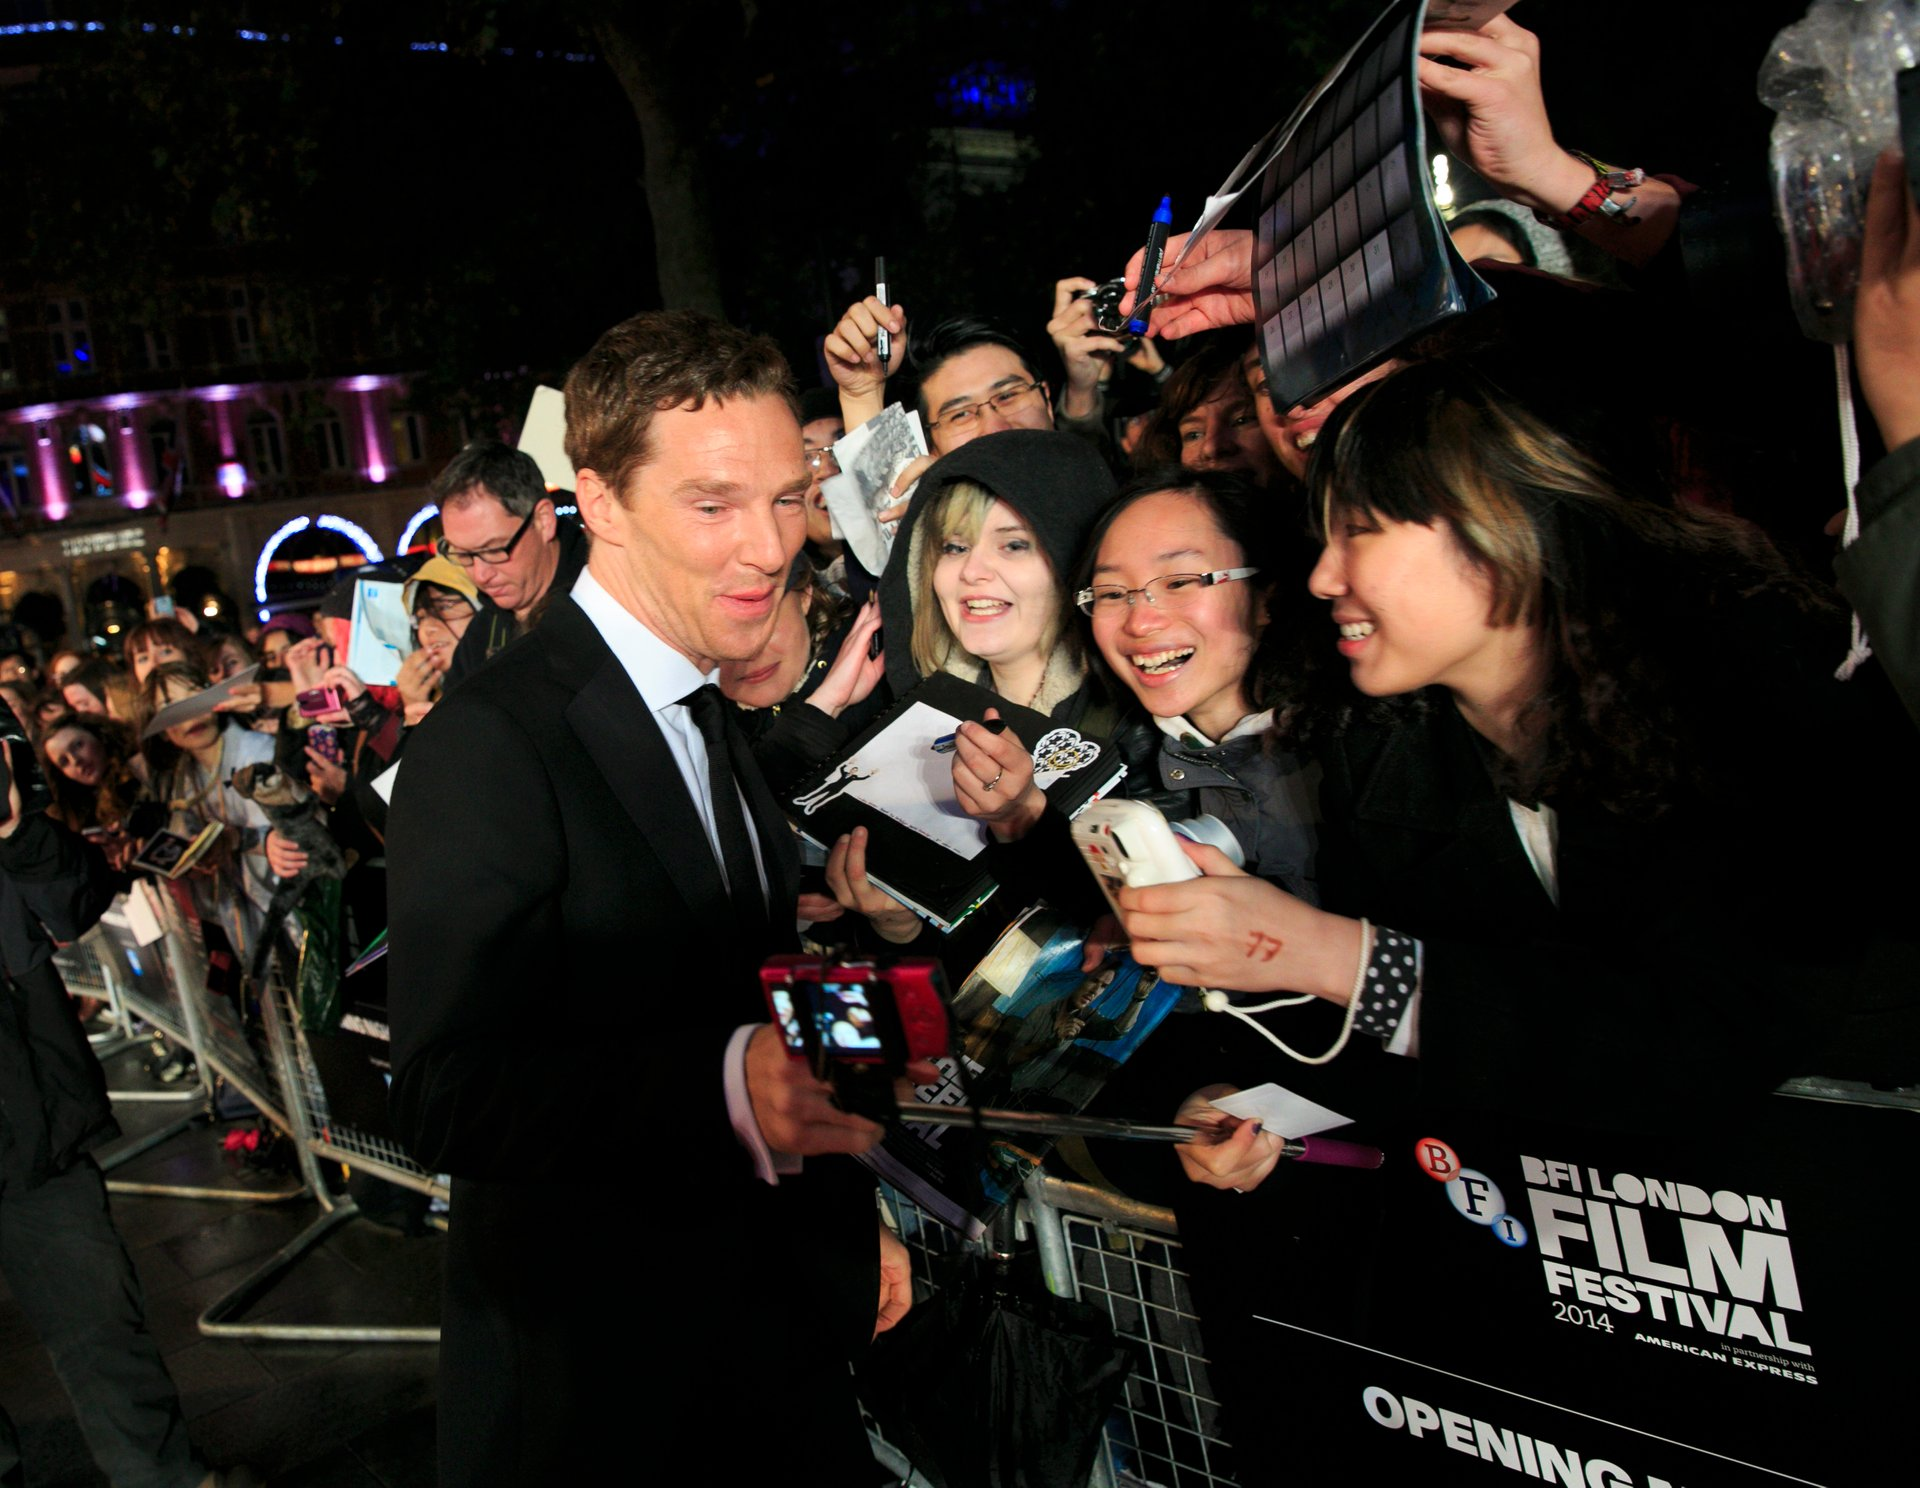 BFI London Film Festival in London - Best Season 2020